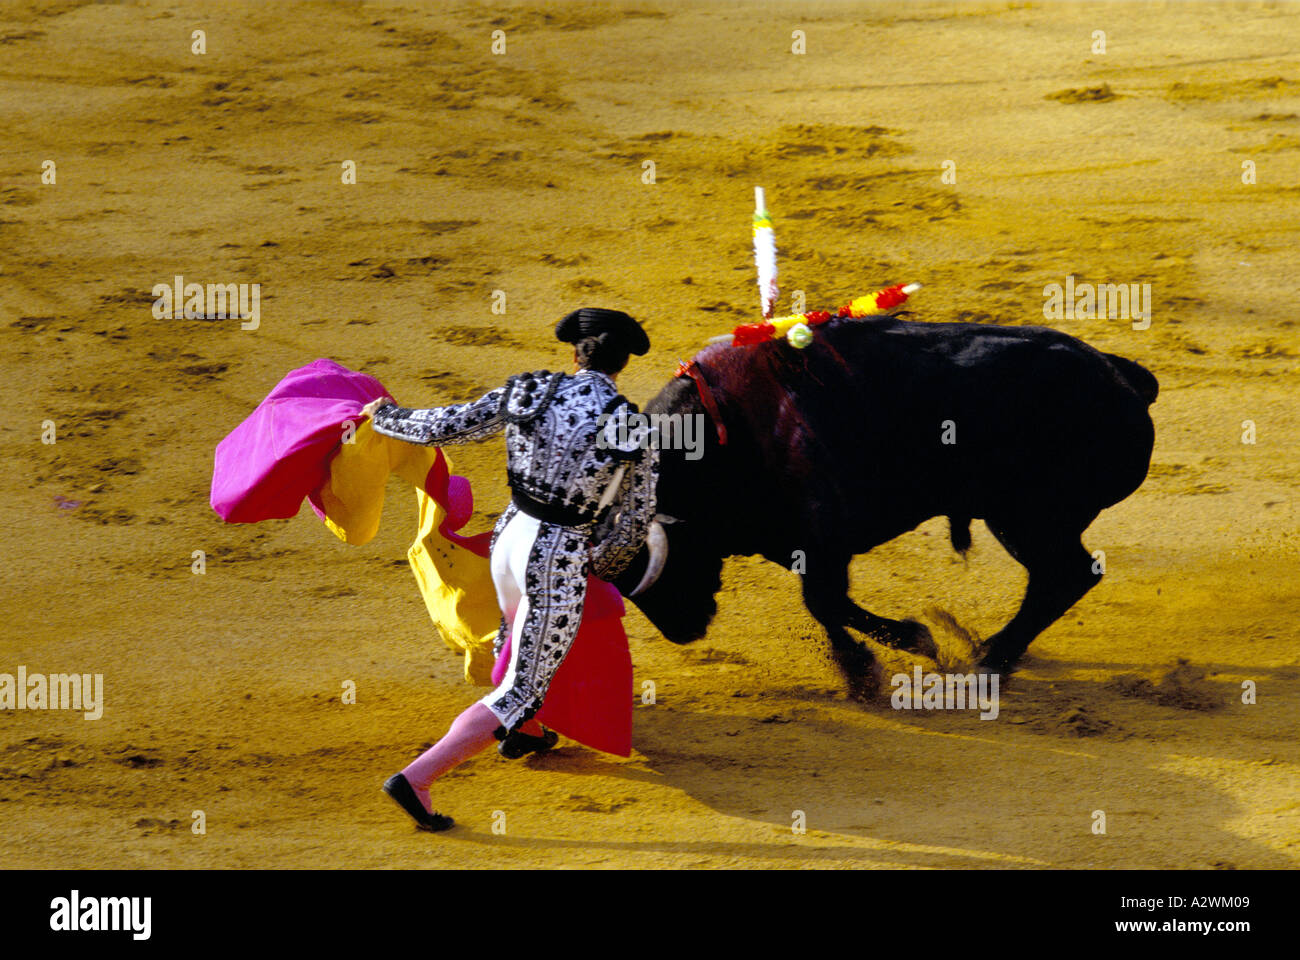 a footman bullfighter capeadores or peones in a white suit with black embroidery works a bull with a magenta and gold cape in or - Stock Image